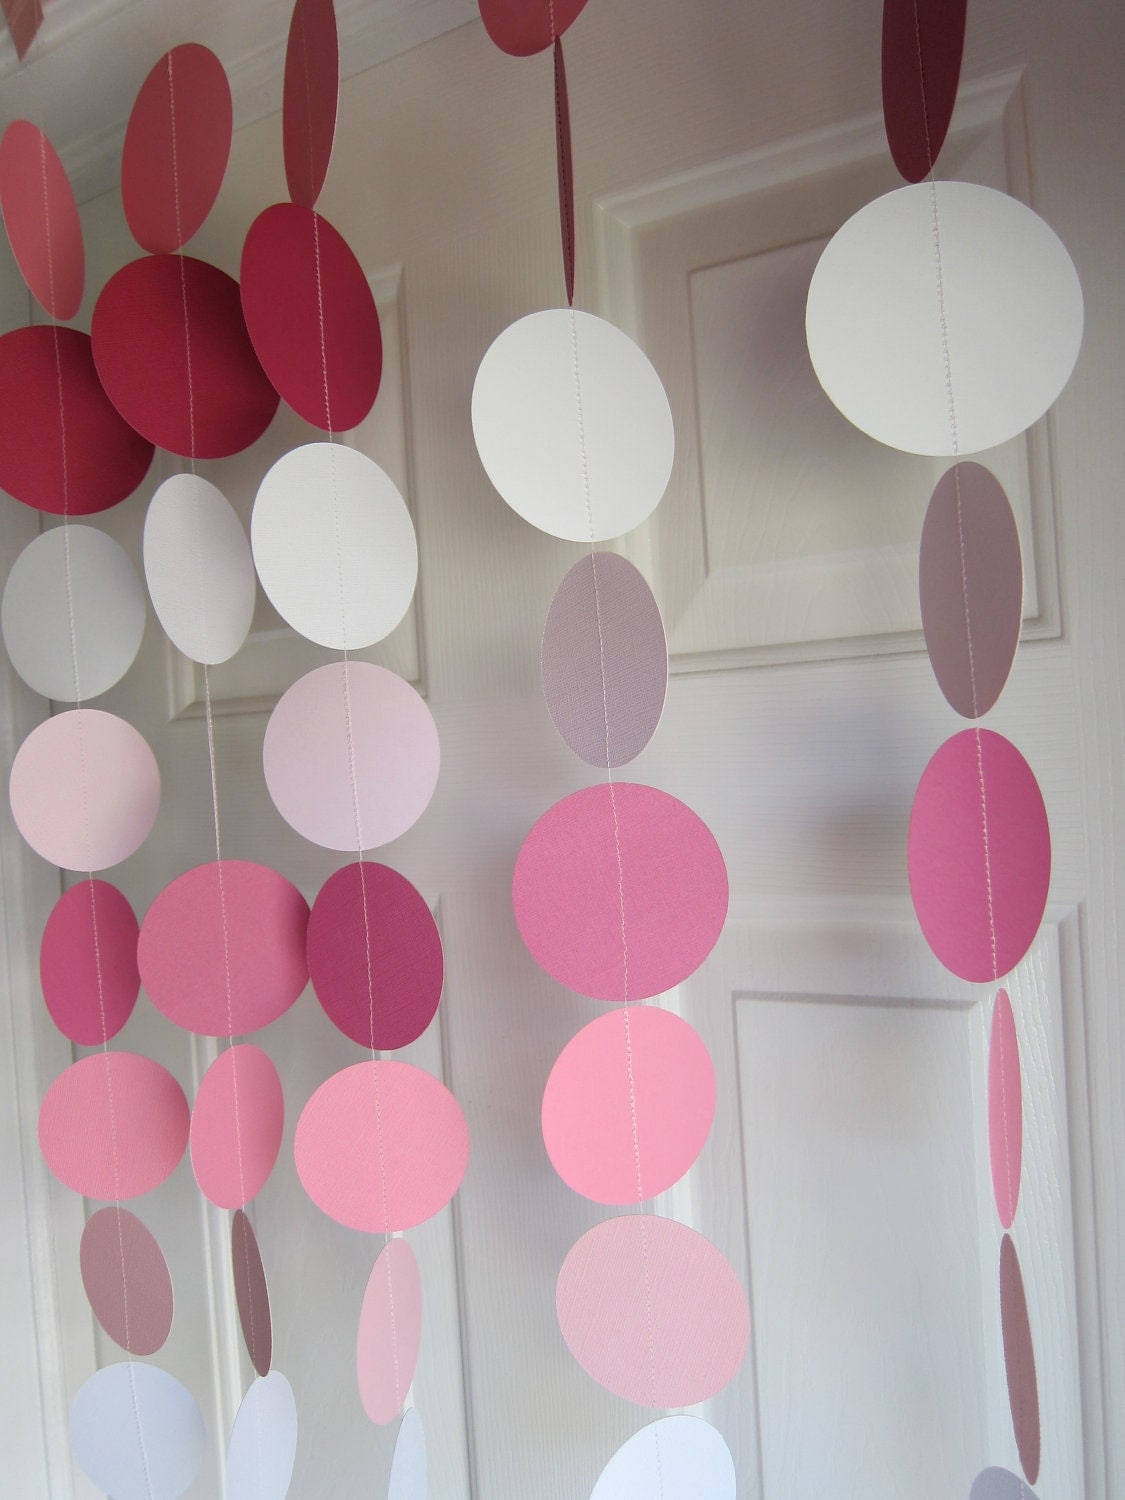 Paper garland decorations birthday party by suzyisanartist - Paper decorations for room ...